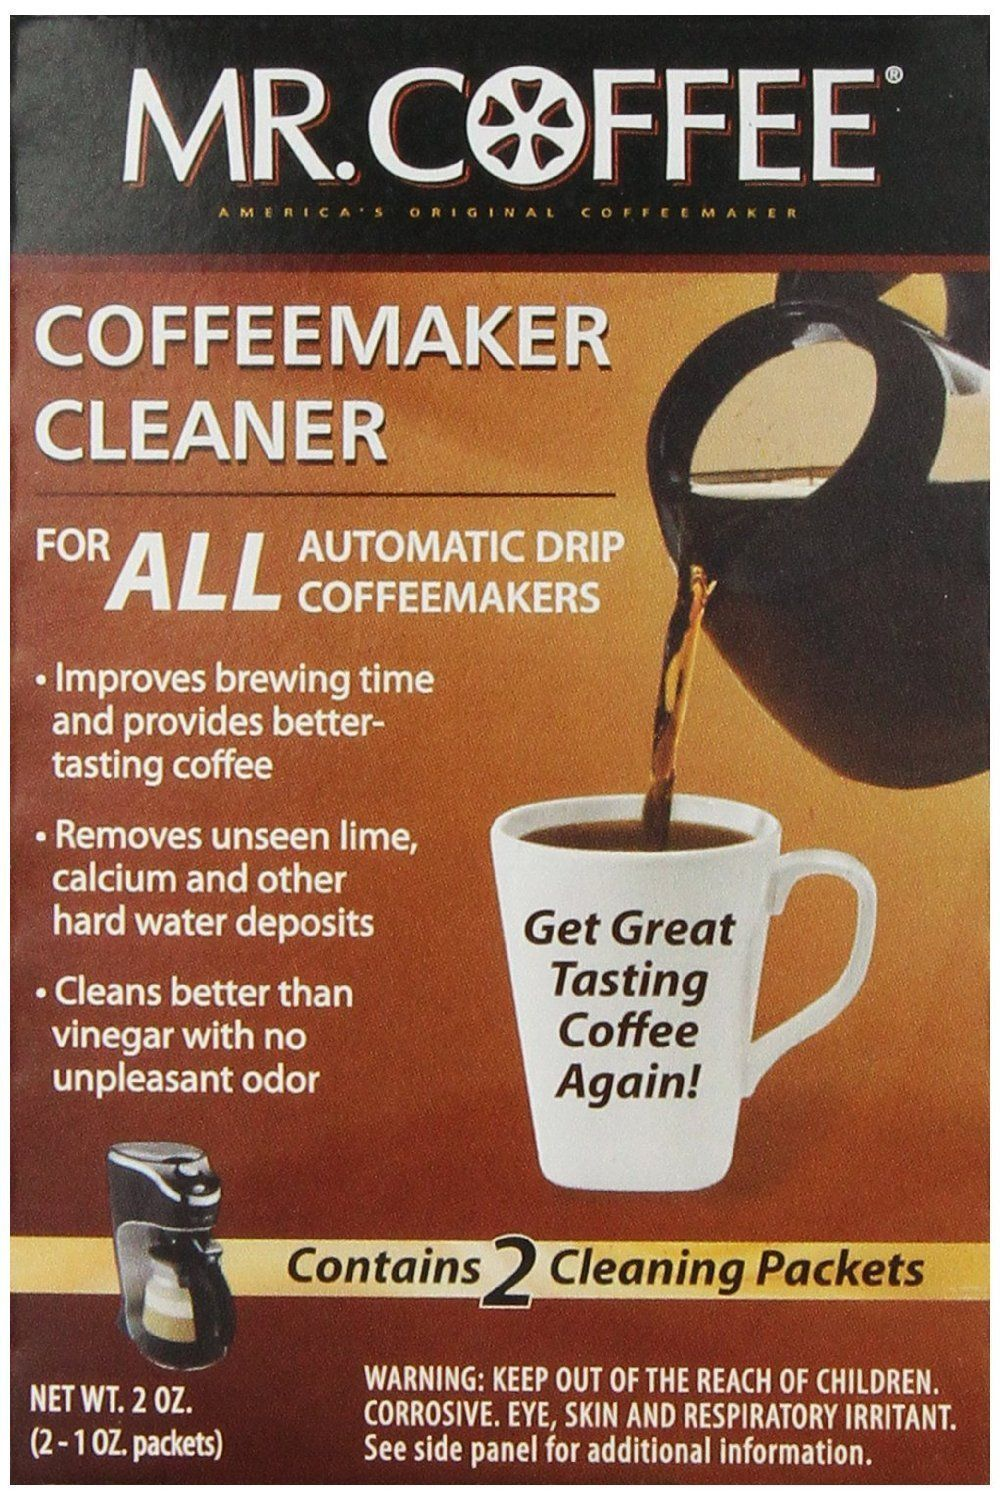 Mr. Coffee Coffeemaker Cleaner For All Automatic Drip